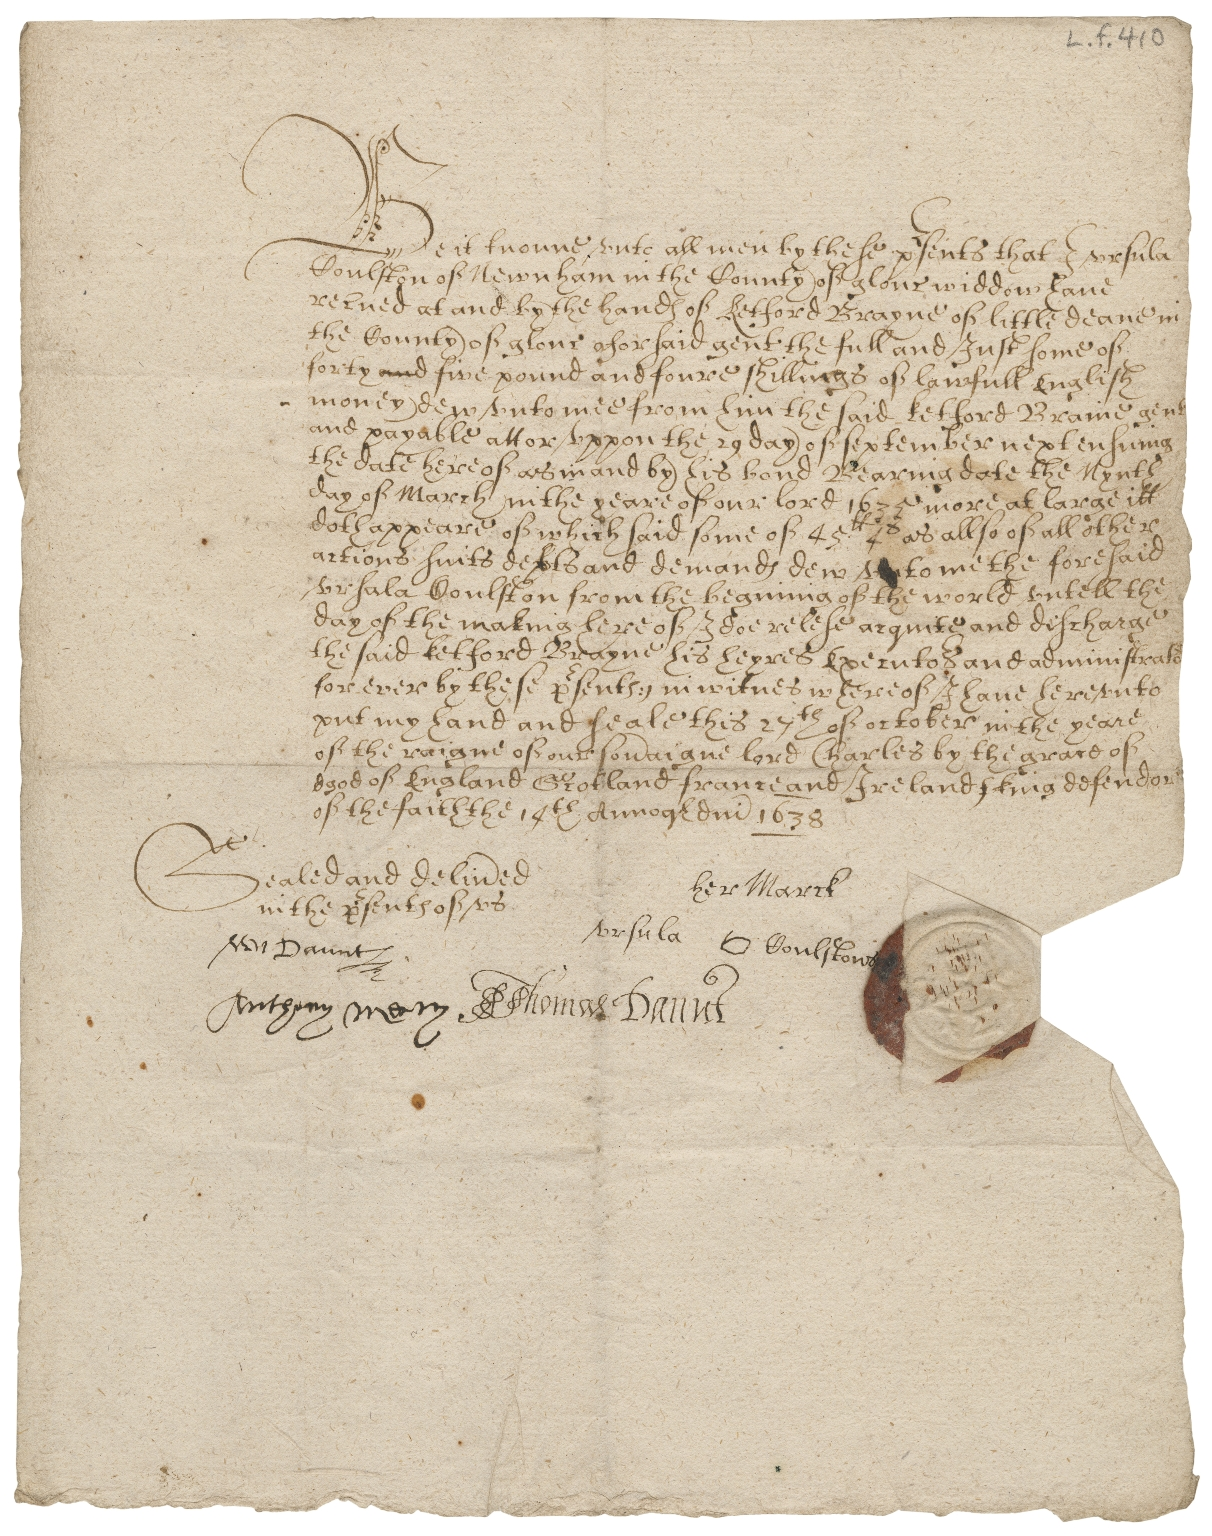 Acquittance from Ursula Coulston of Newnham, Gloucestershire to Ketford Brayne of Littledean, Gloucestershire